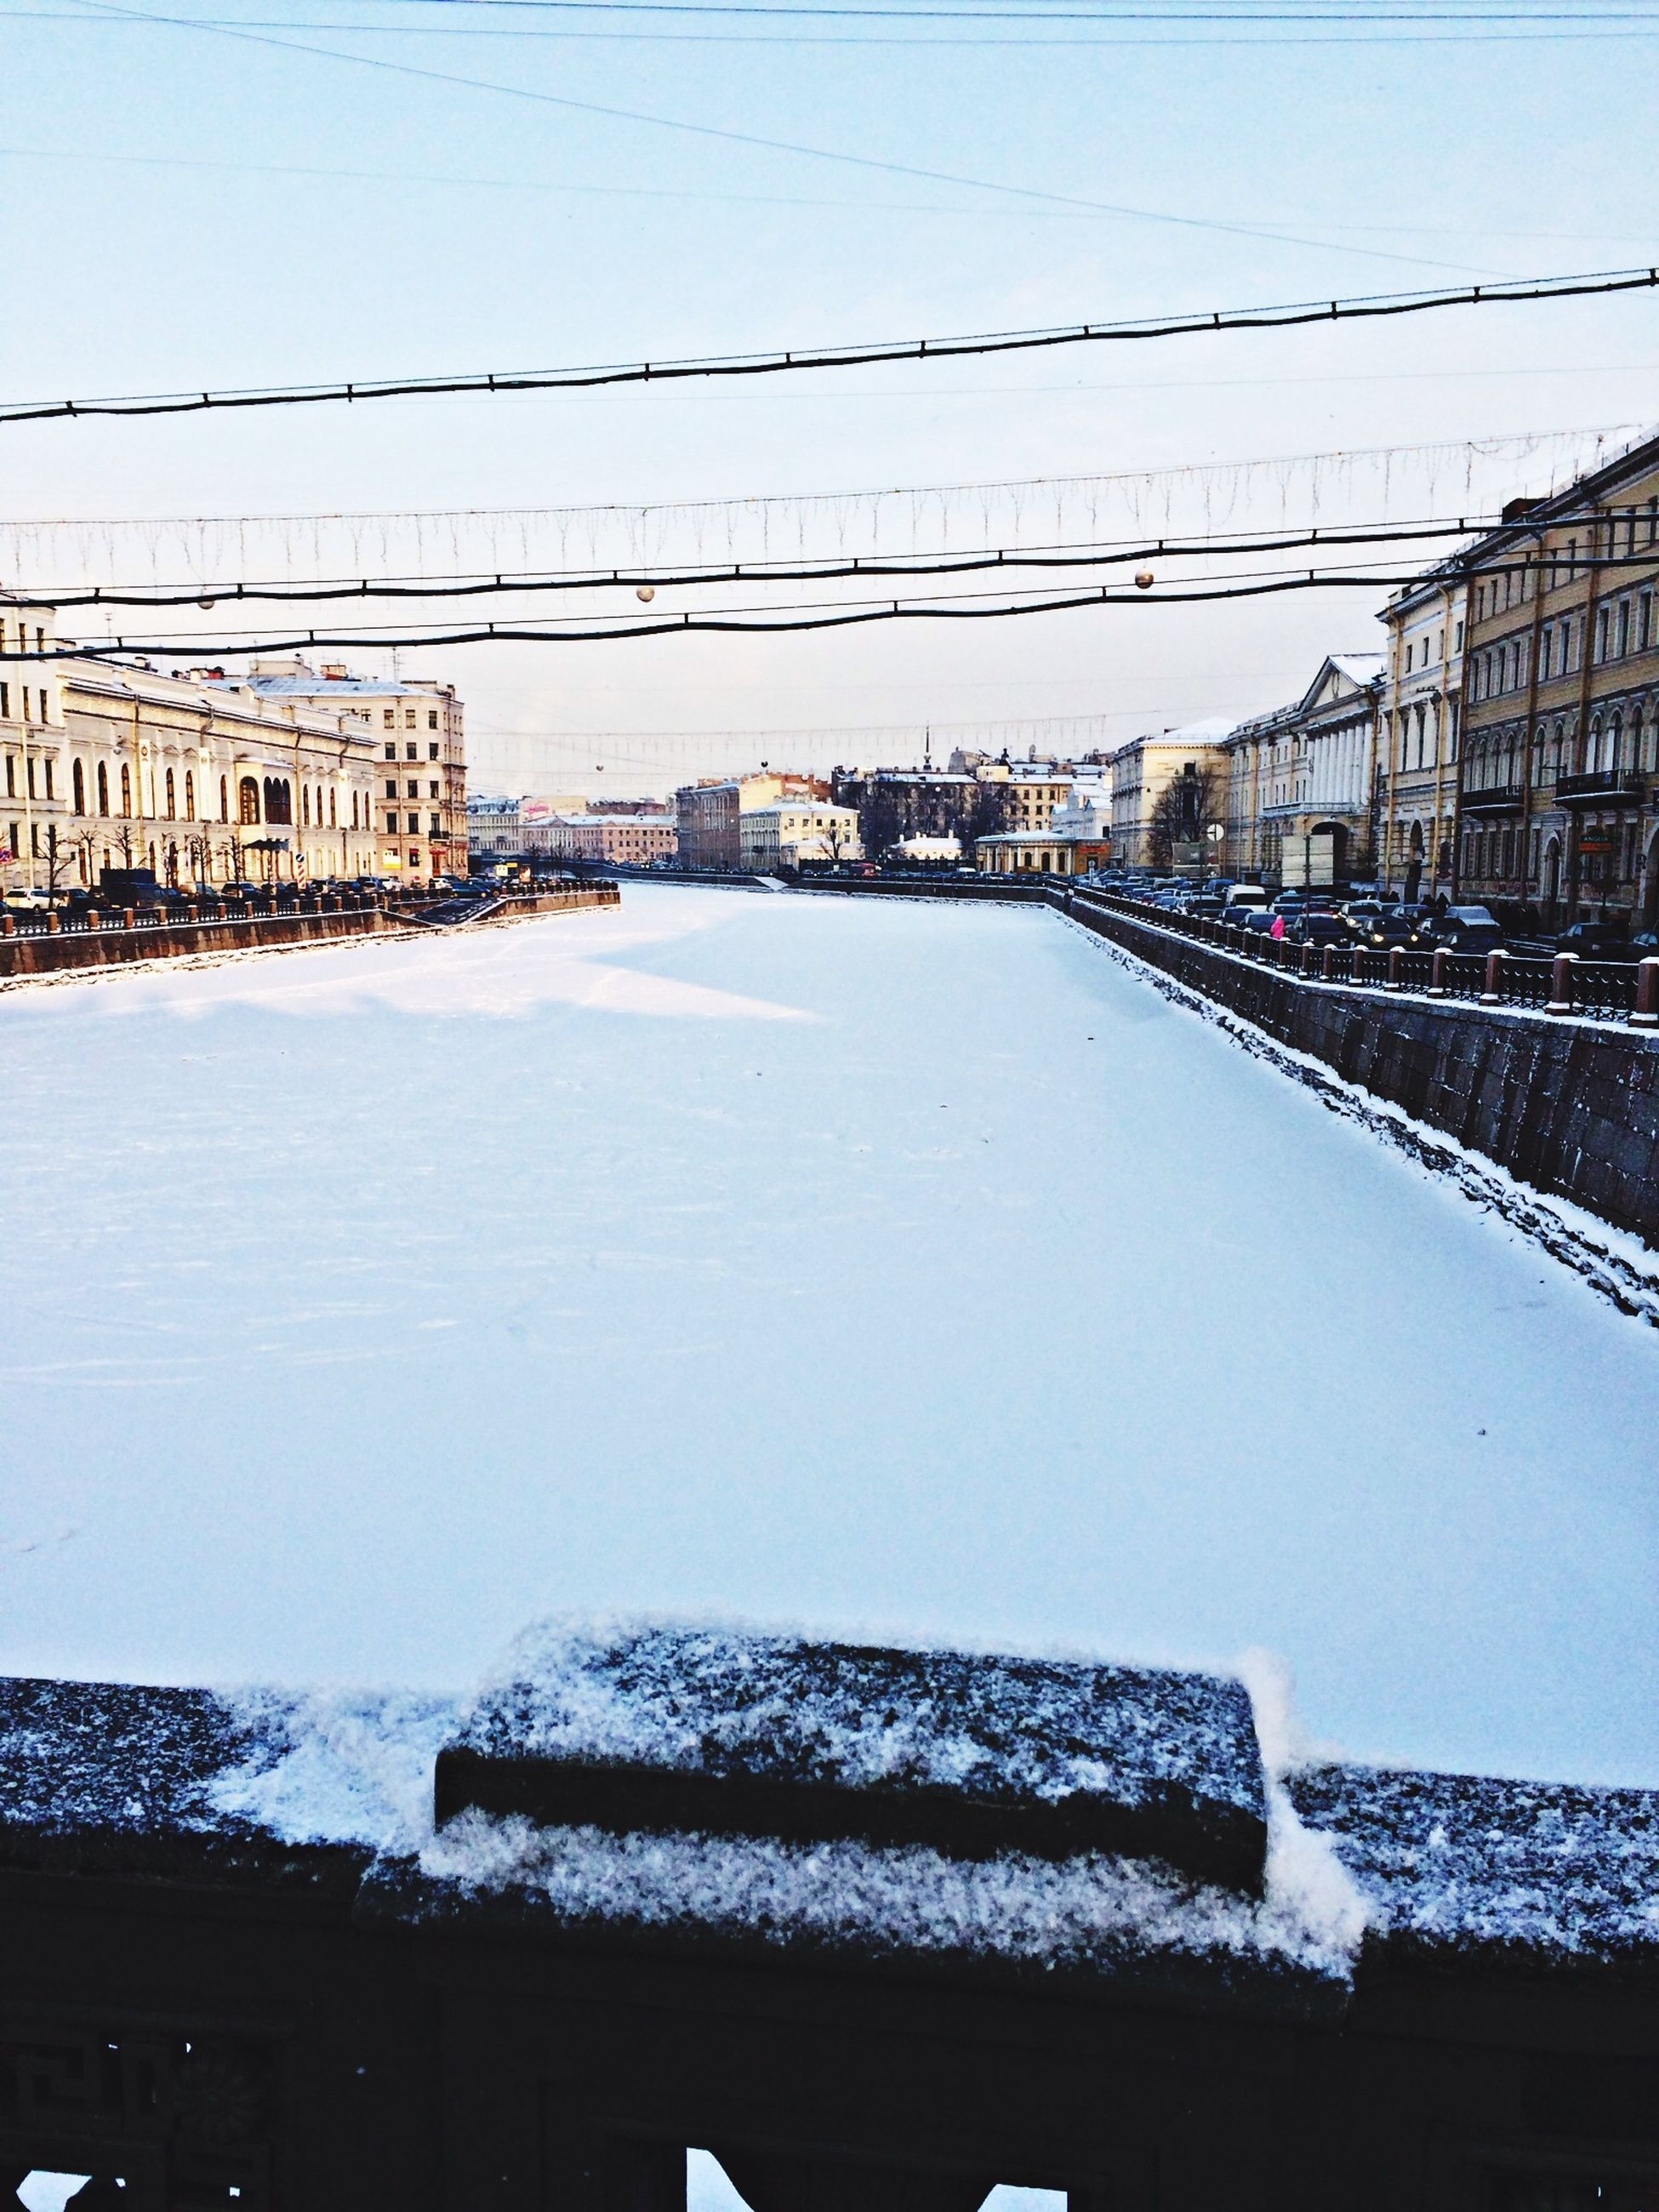 architecture, built structure, building exterior, winter, snow, cold temperature, season, clear sky, water, residential building, residential structure, house, frozen, city, railing, connection, weather, outdoors, sky, day